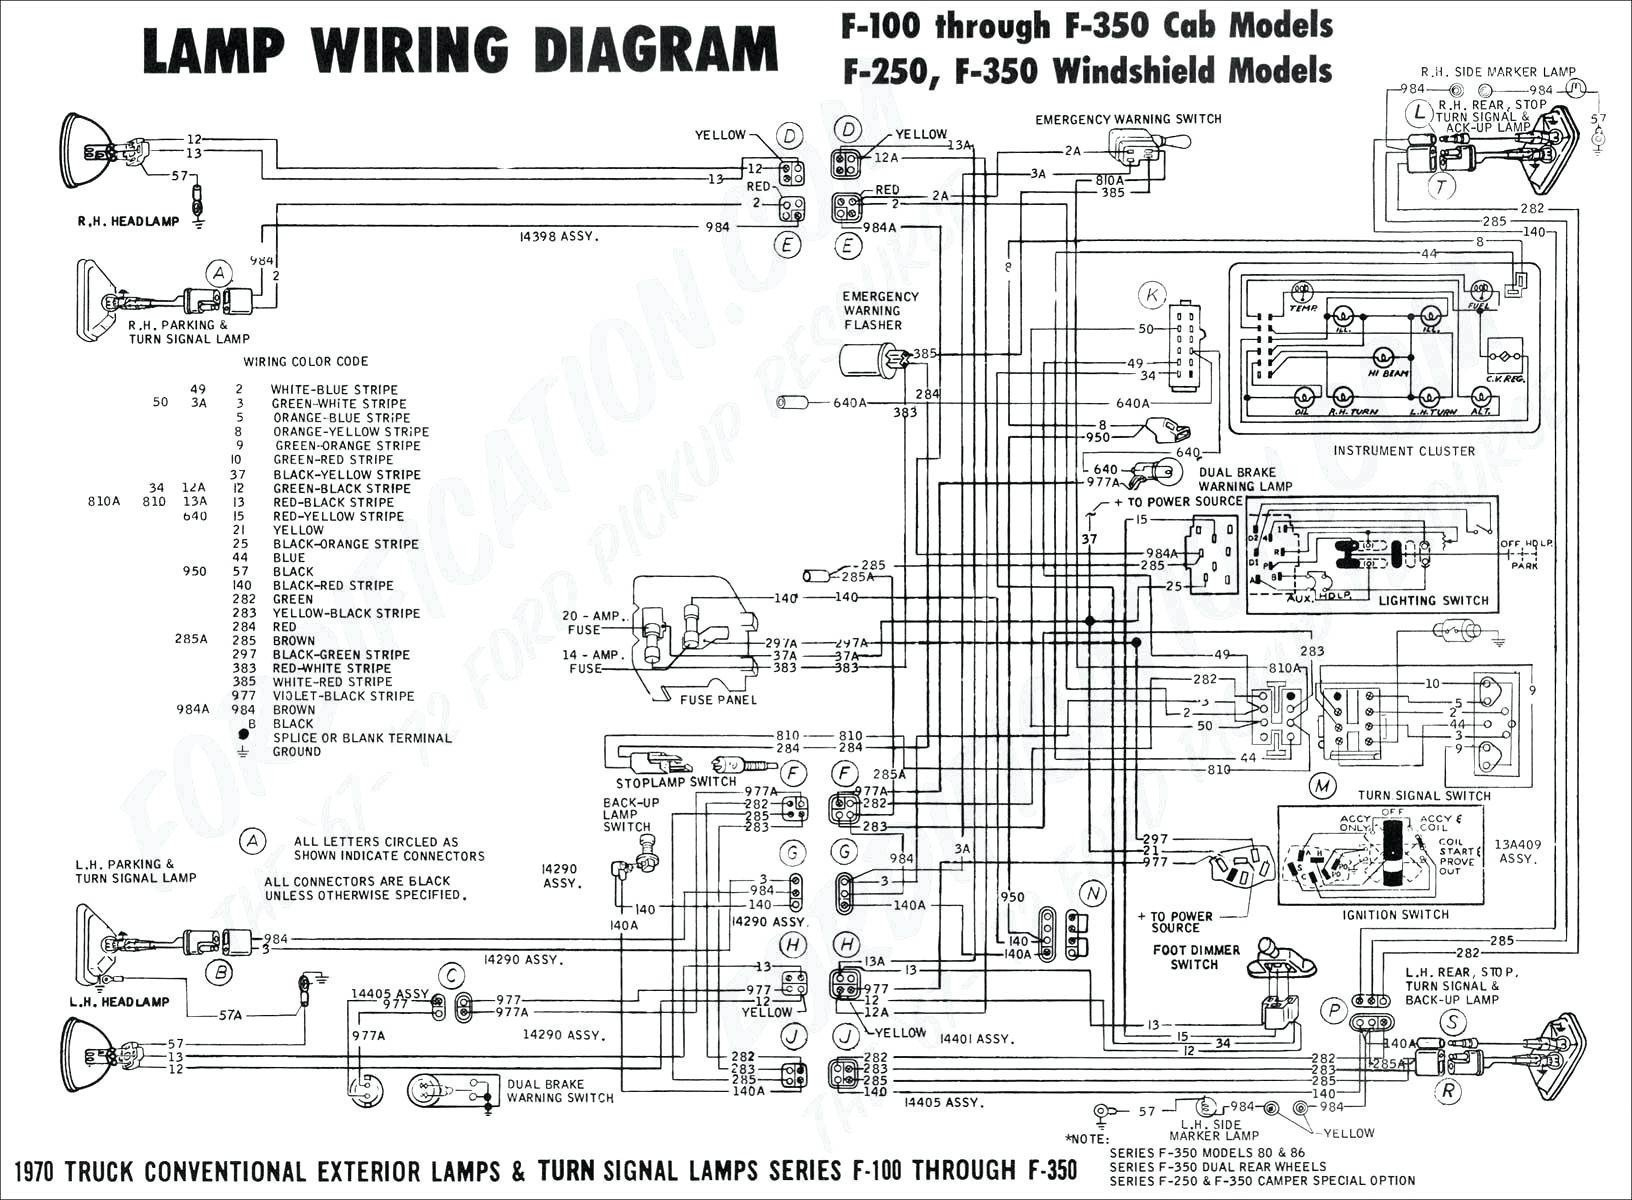 Led Flood Light Wiring Diagram Lovely Wiring Diagram For Outdoor - 66 Block Wiring Diagram